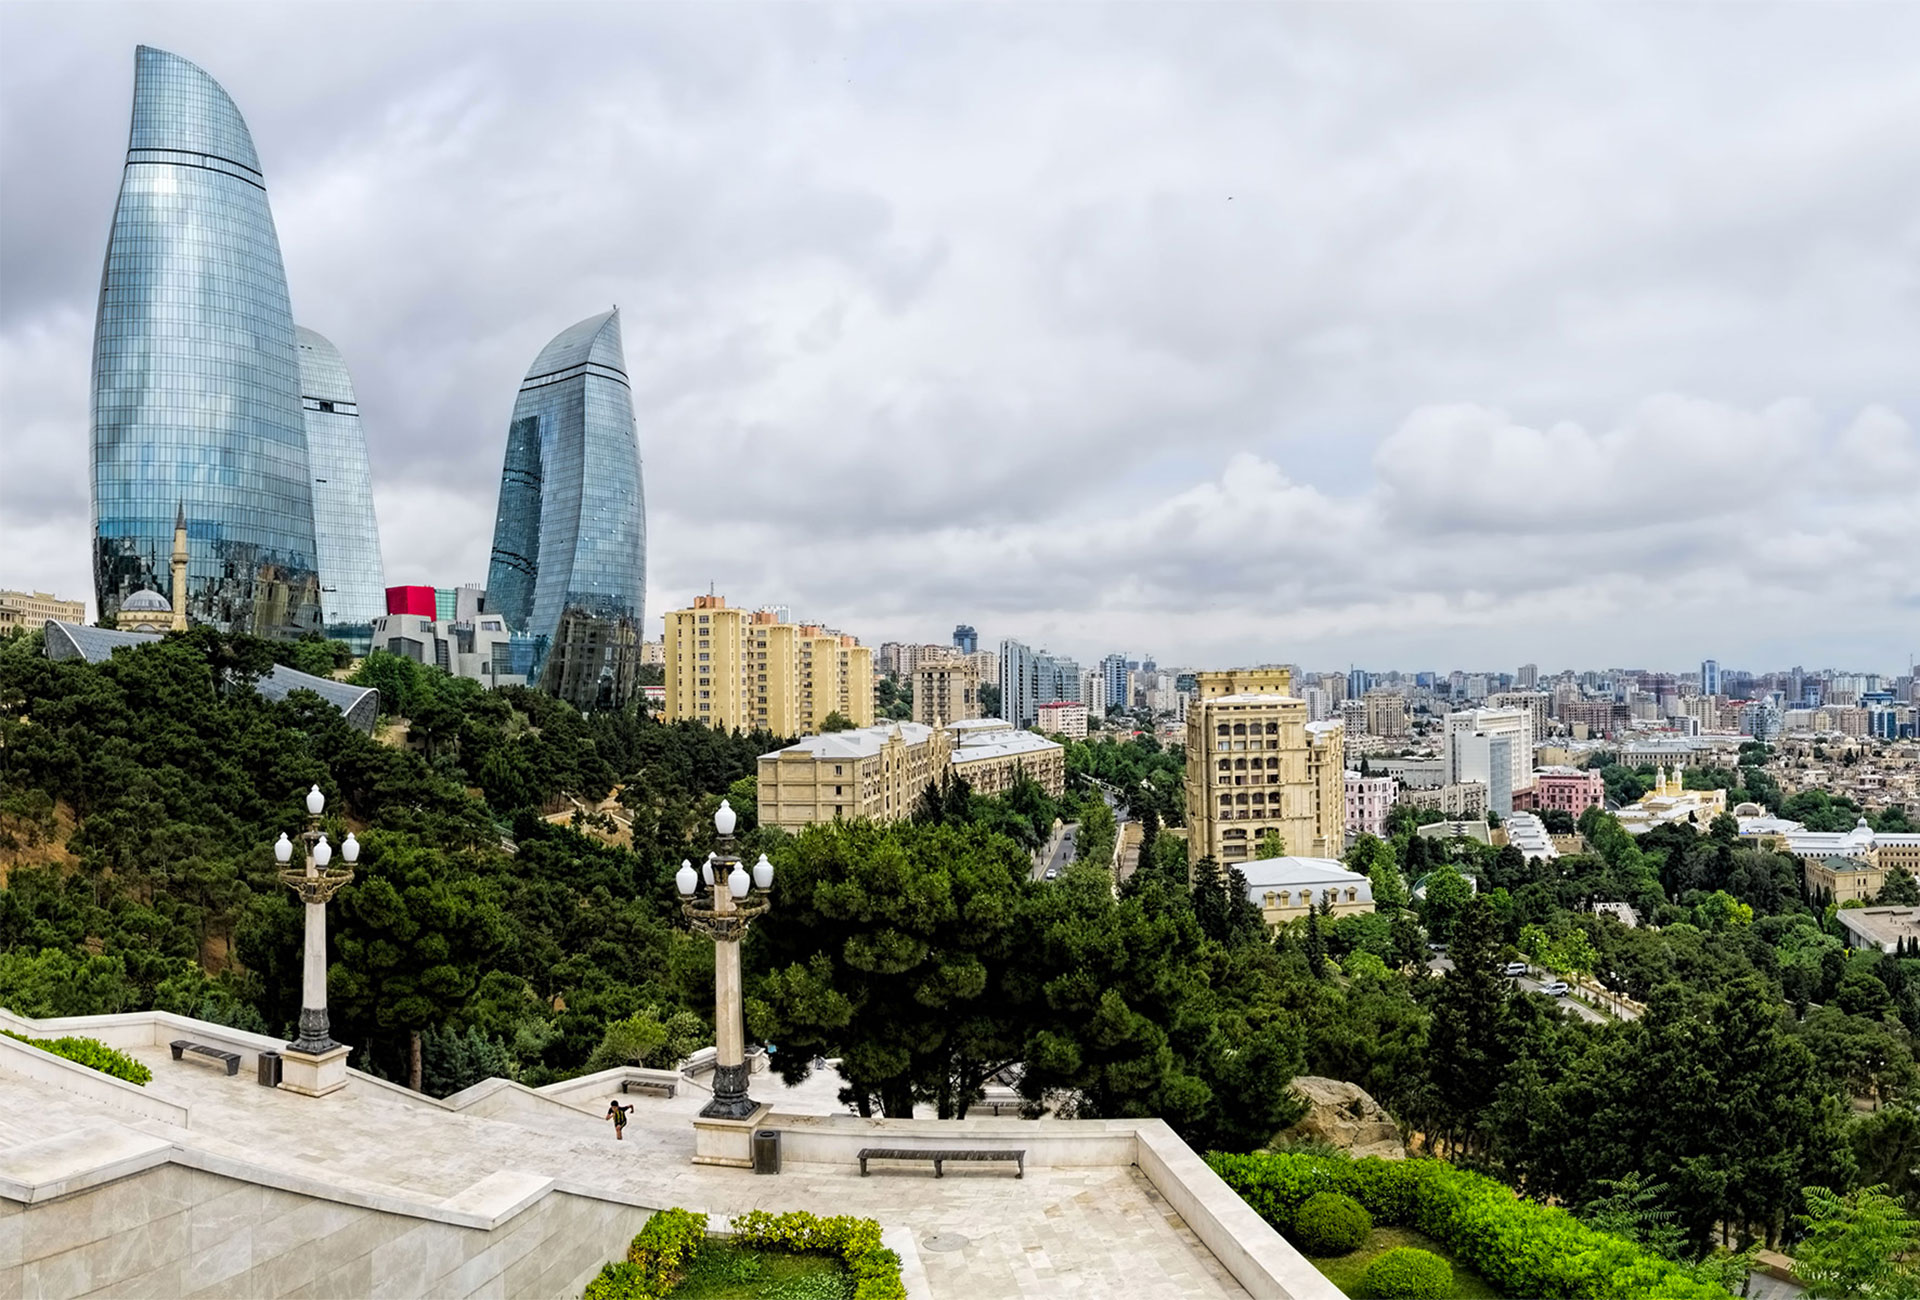 BAKU NEW ARCHITECTURE CAPITAL